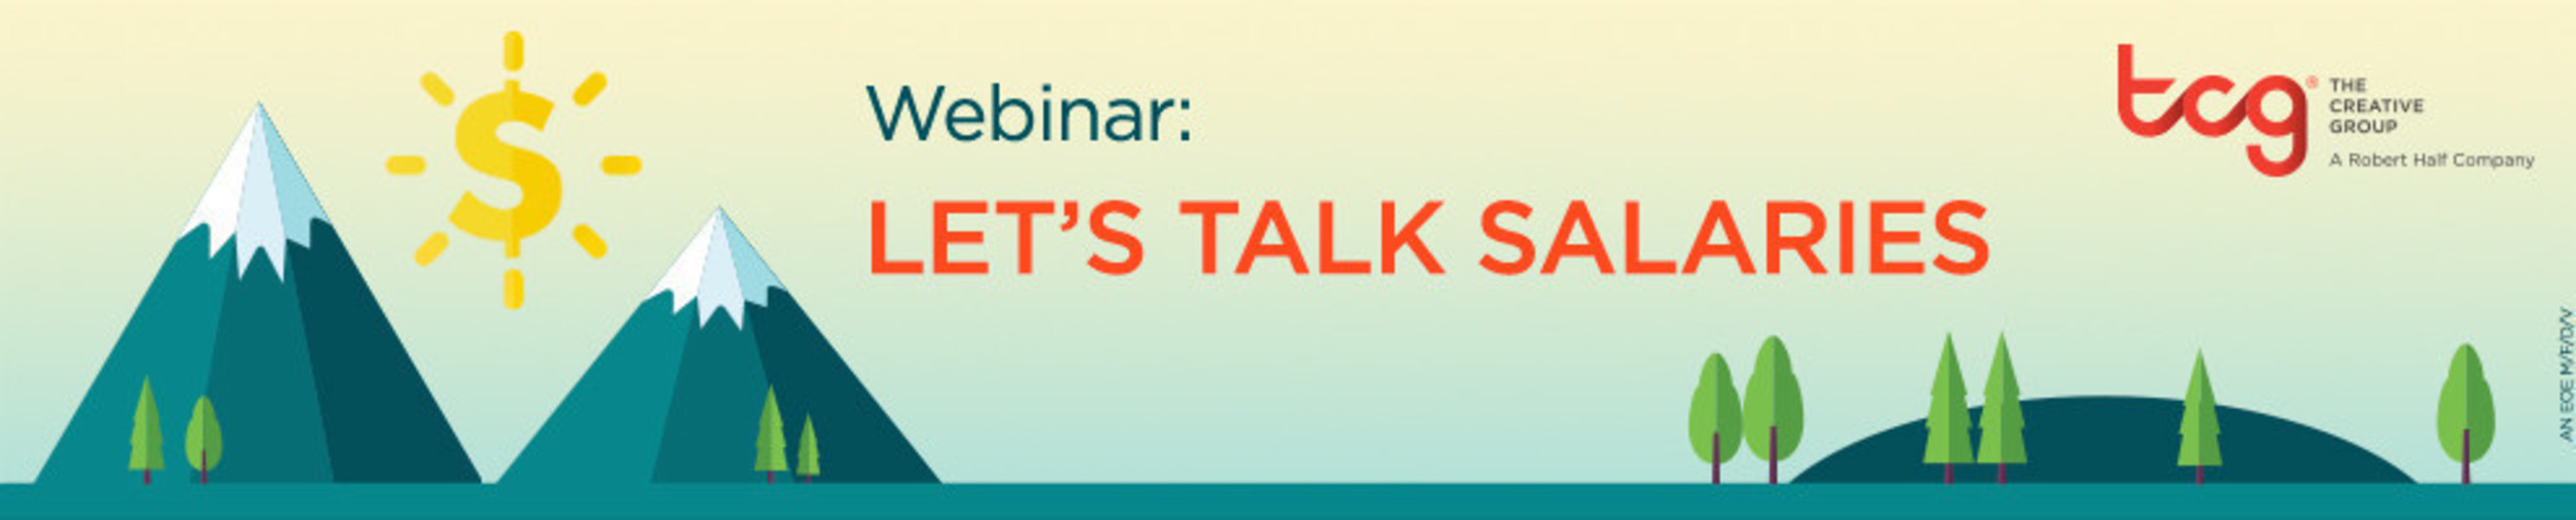 The Creative Group to present complimentary webinar on salary trends and negotiation tips for creative and marketing professionals on Dec. 7, 2016.